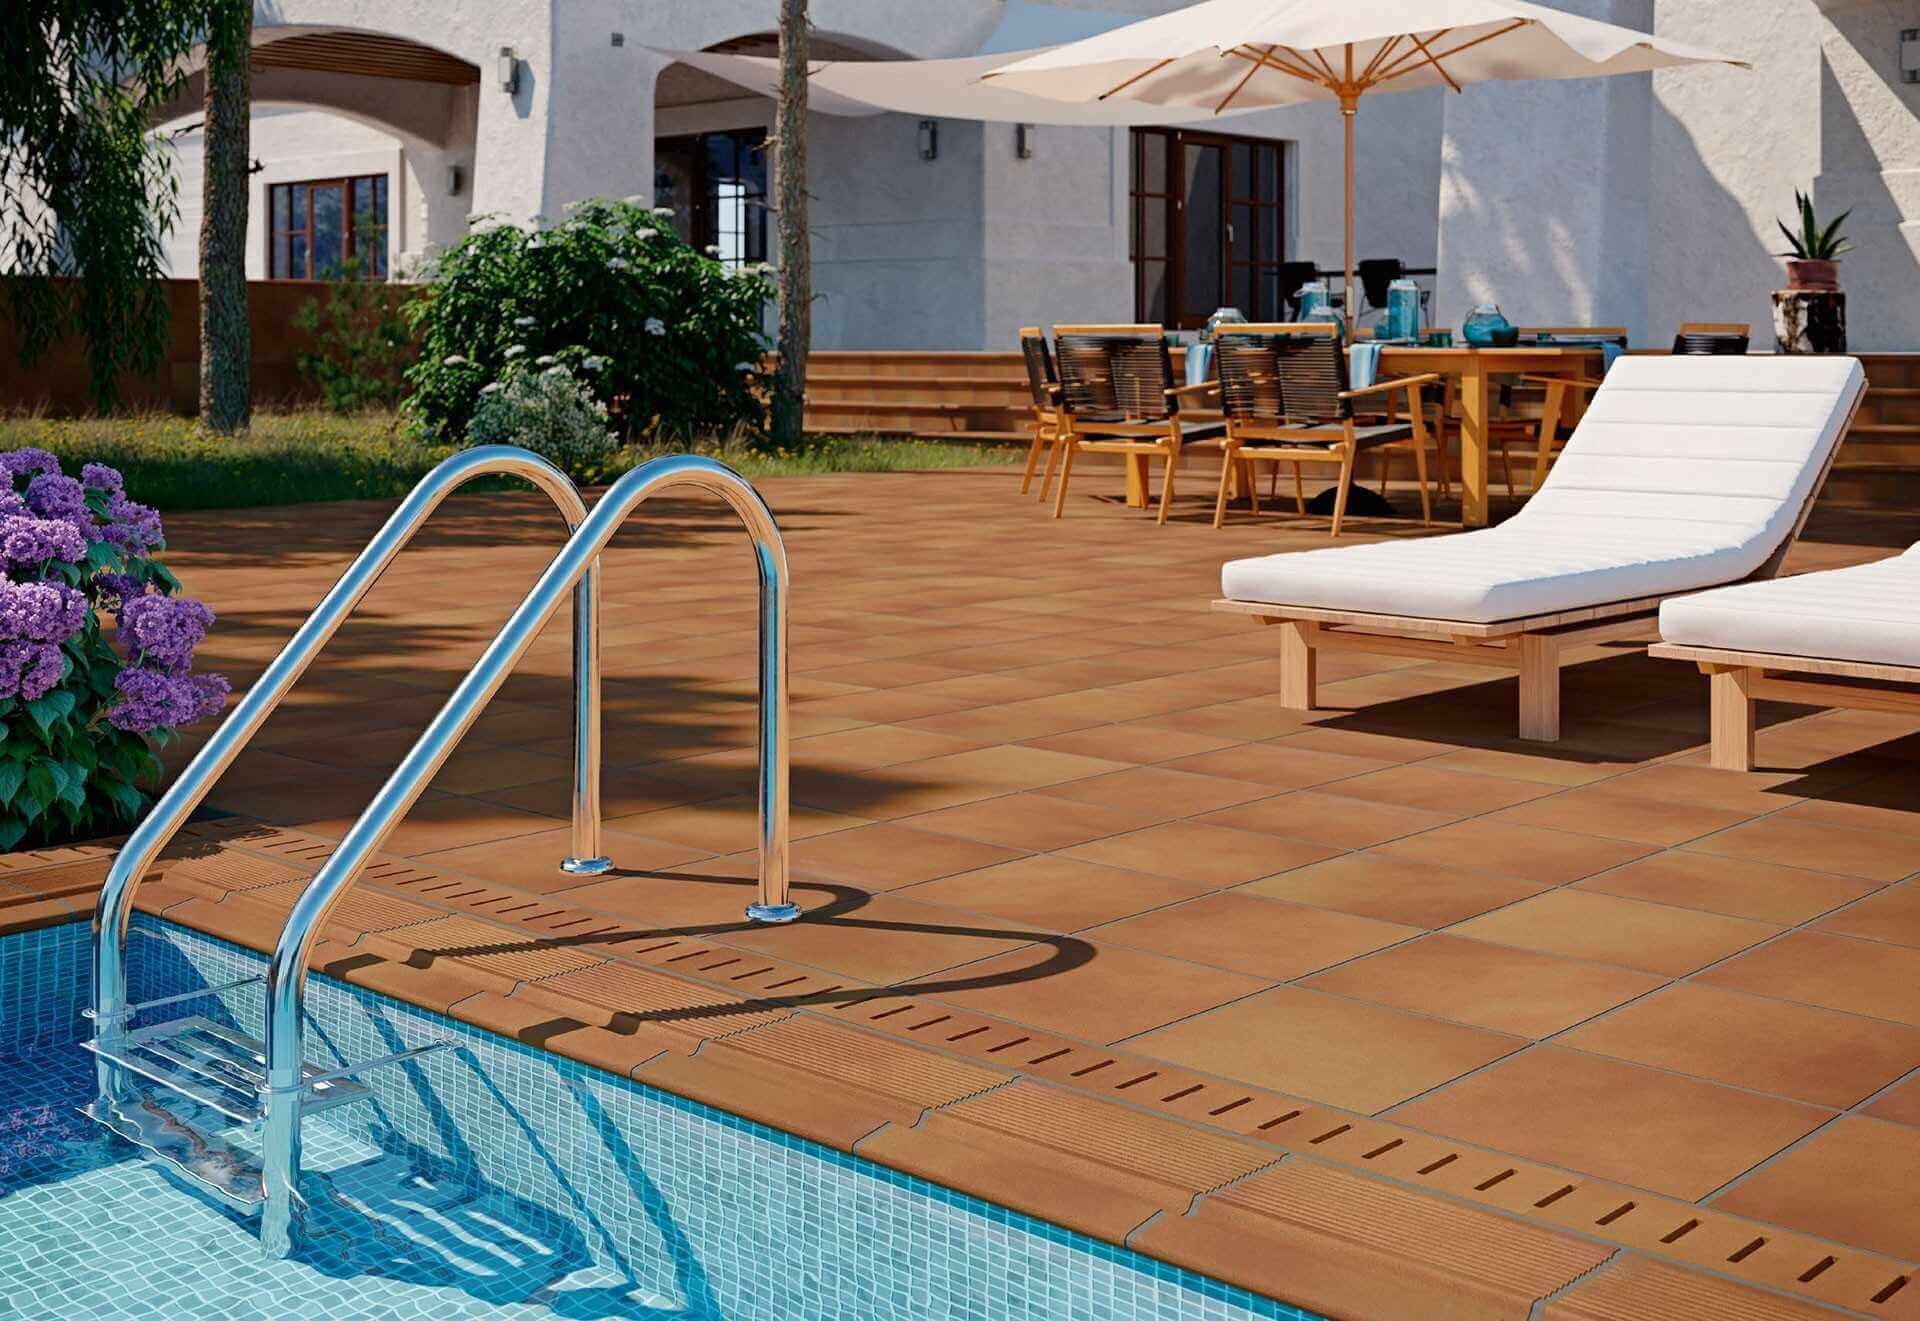 Teide series - Swimming Pool Tiles: How to Choose the Right Ones - EXT Ceramic